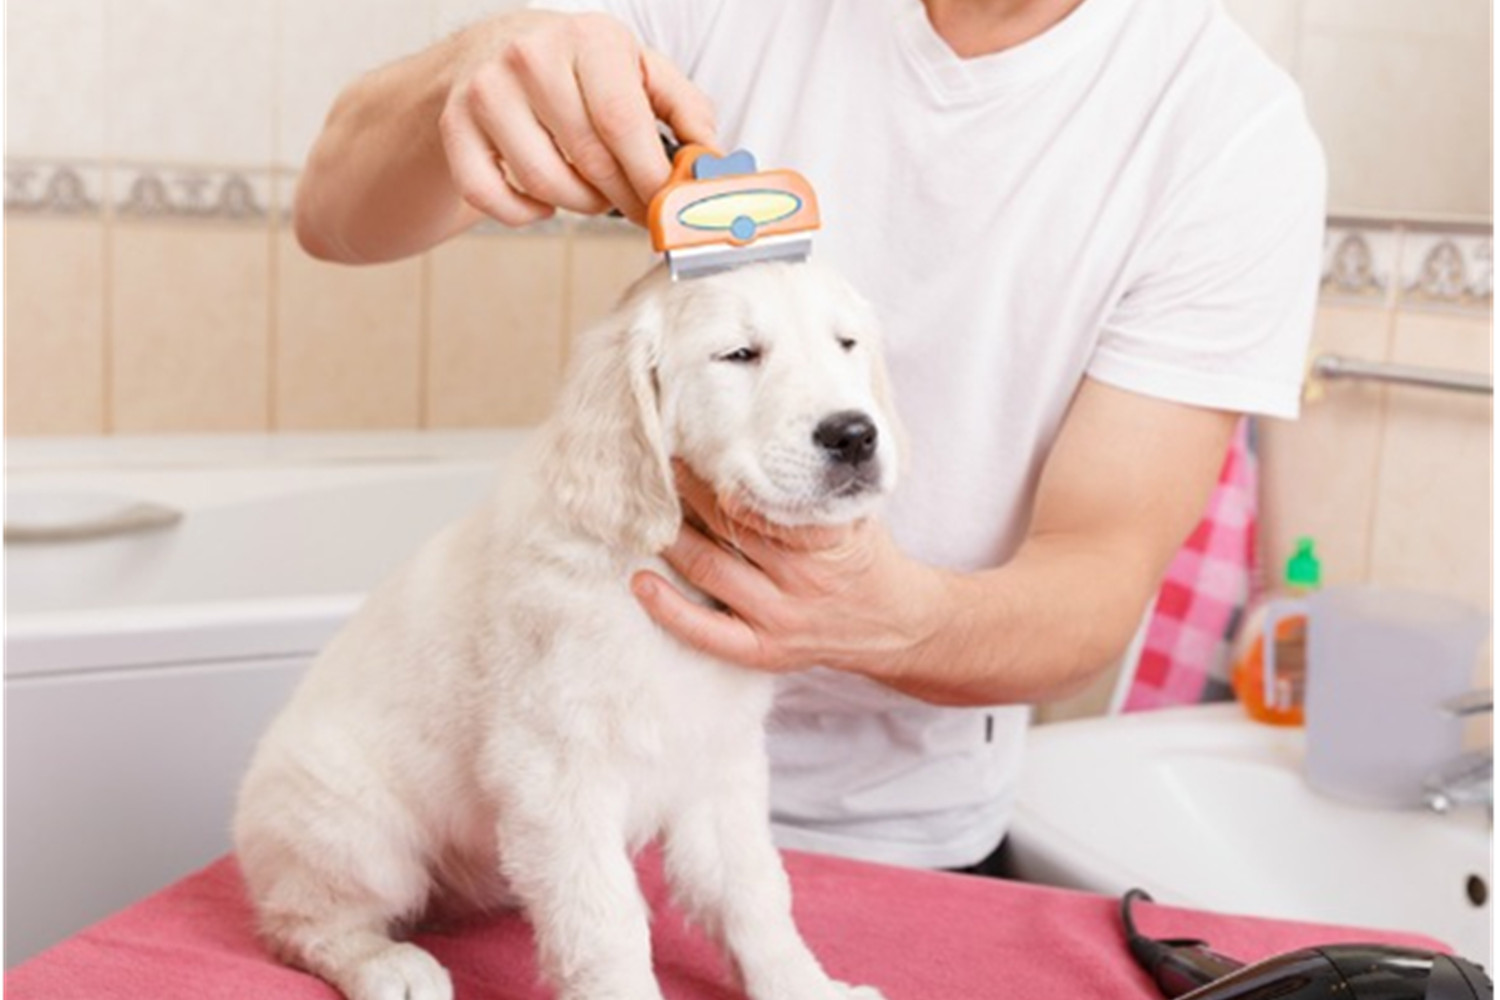 How To Do Pet Hair Removal- Important Pet Grooming Tips To Follow.